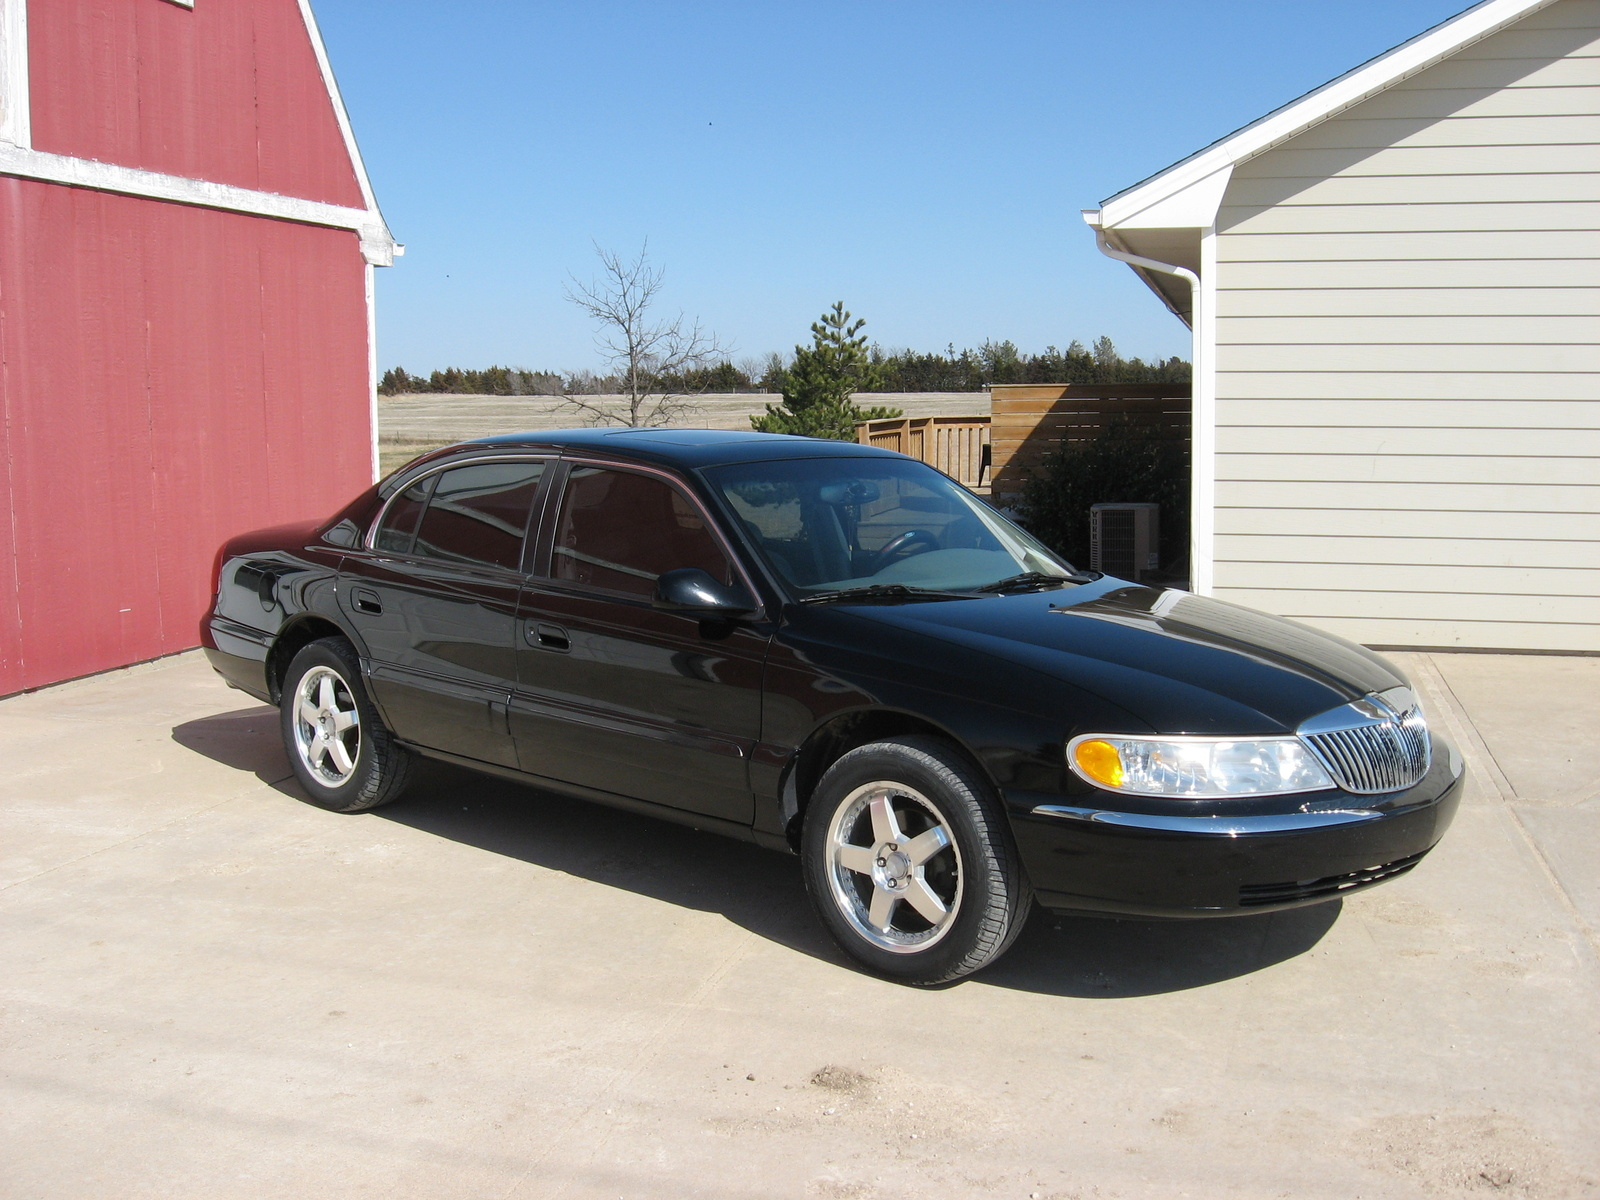 1998 Lincoln Continental 4 Dr STD Sedan picture